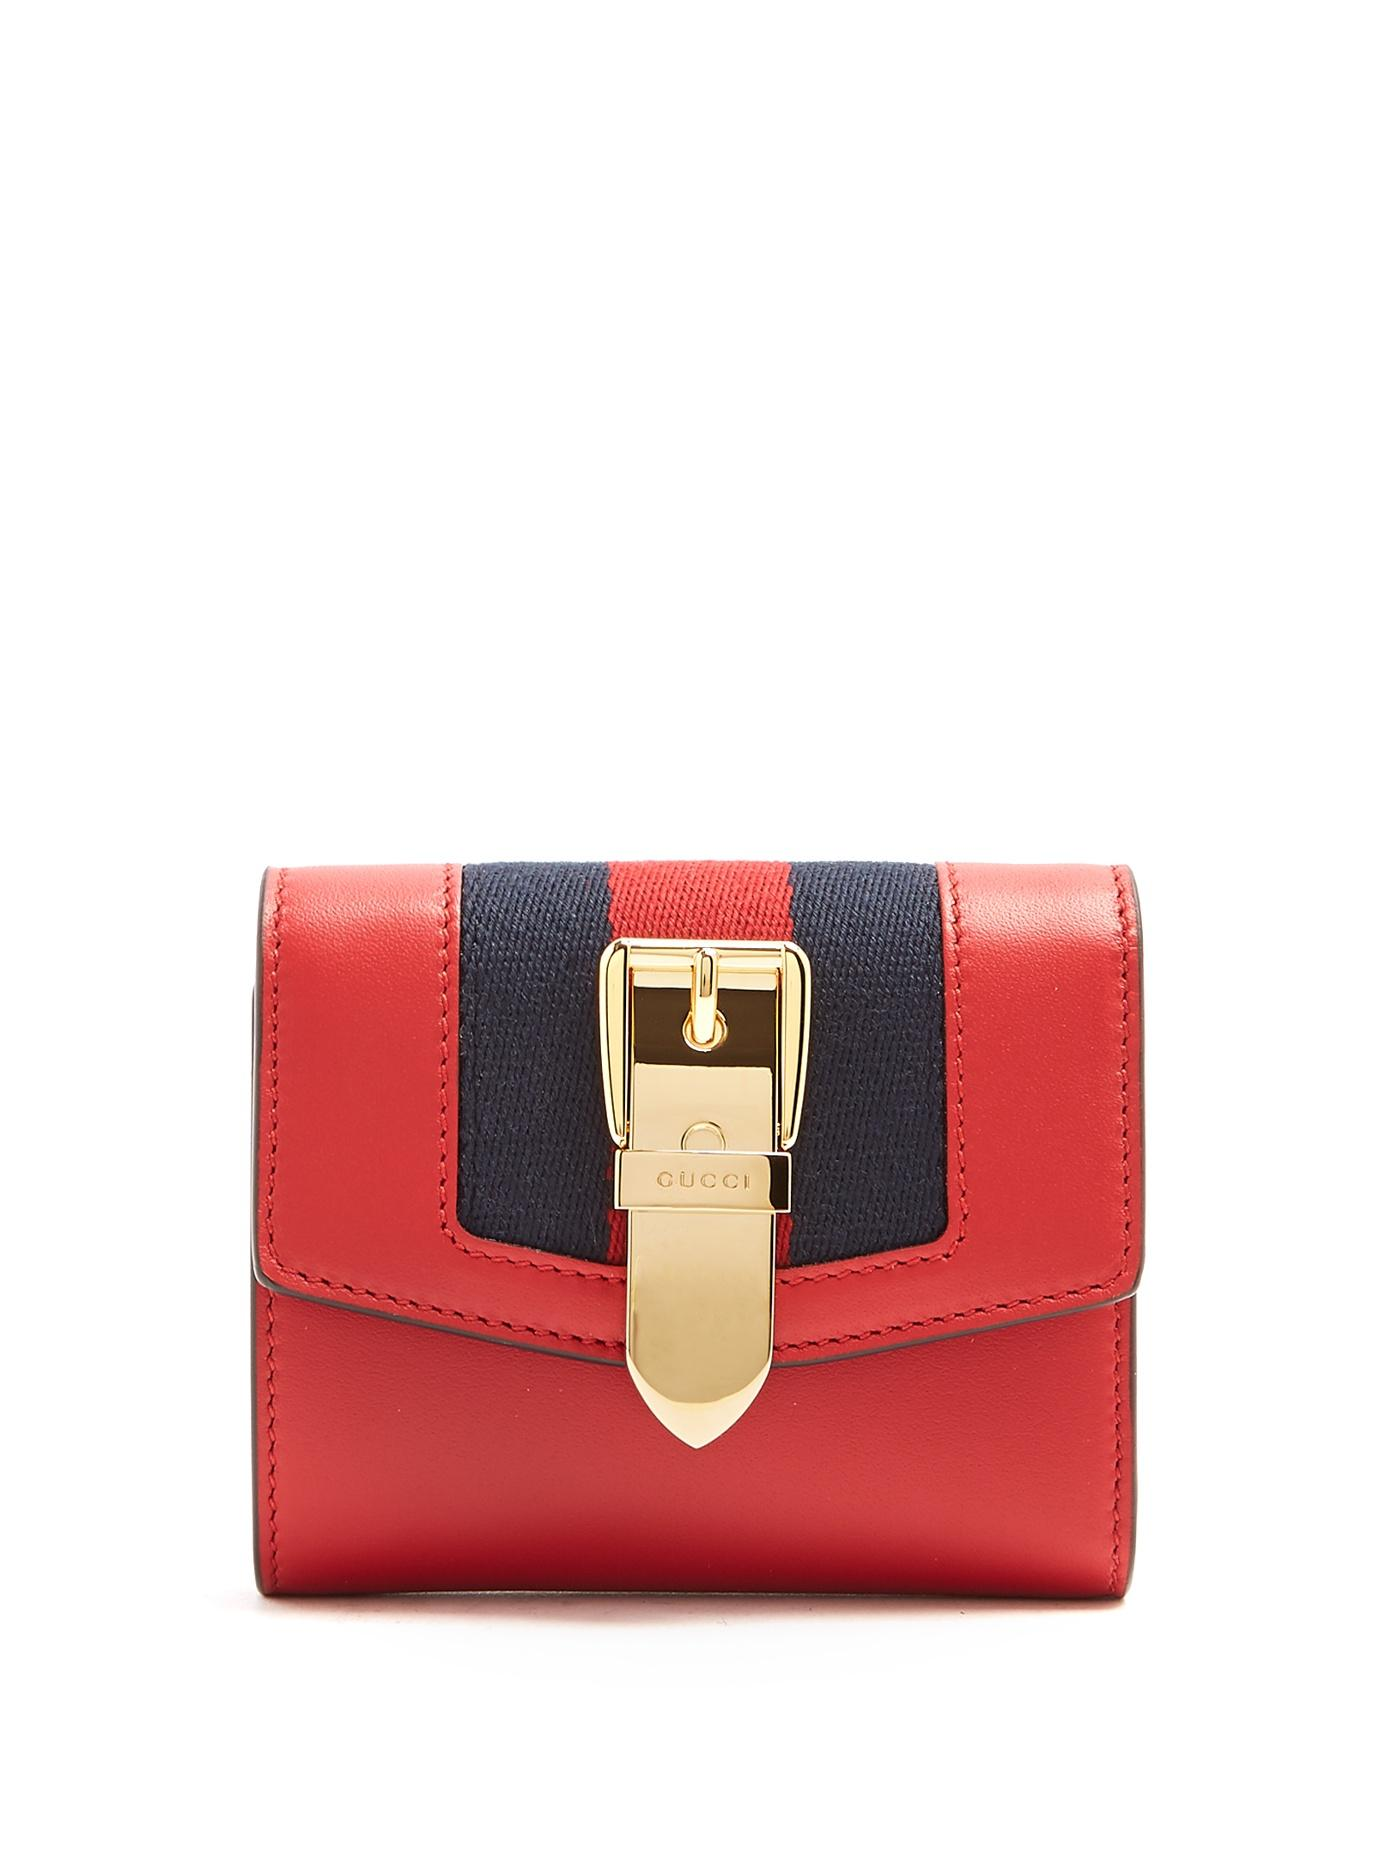 929b2a611 Gucci Sylvie Canvas-Trimmed Leather Wallet In 6473 Rouge | ModeSens